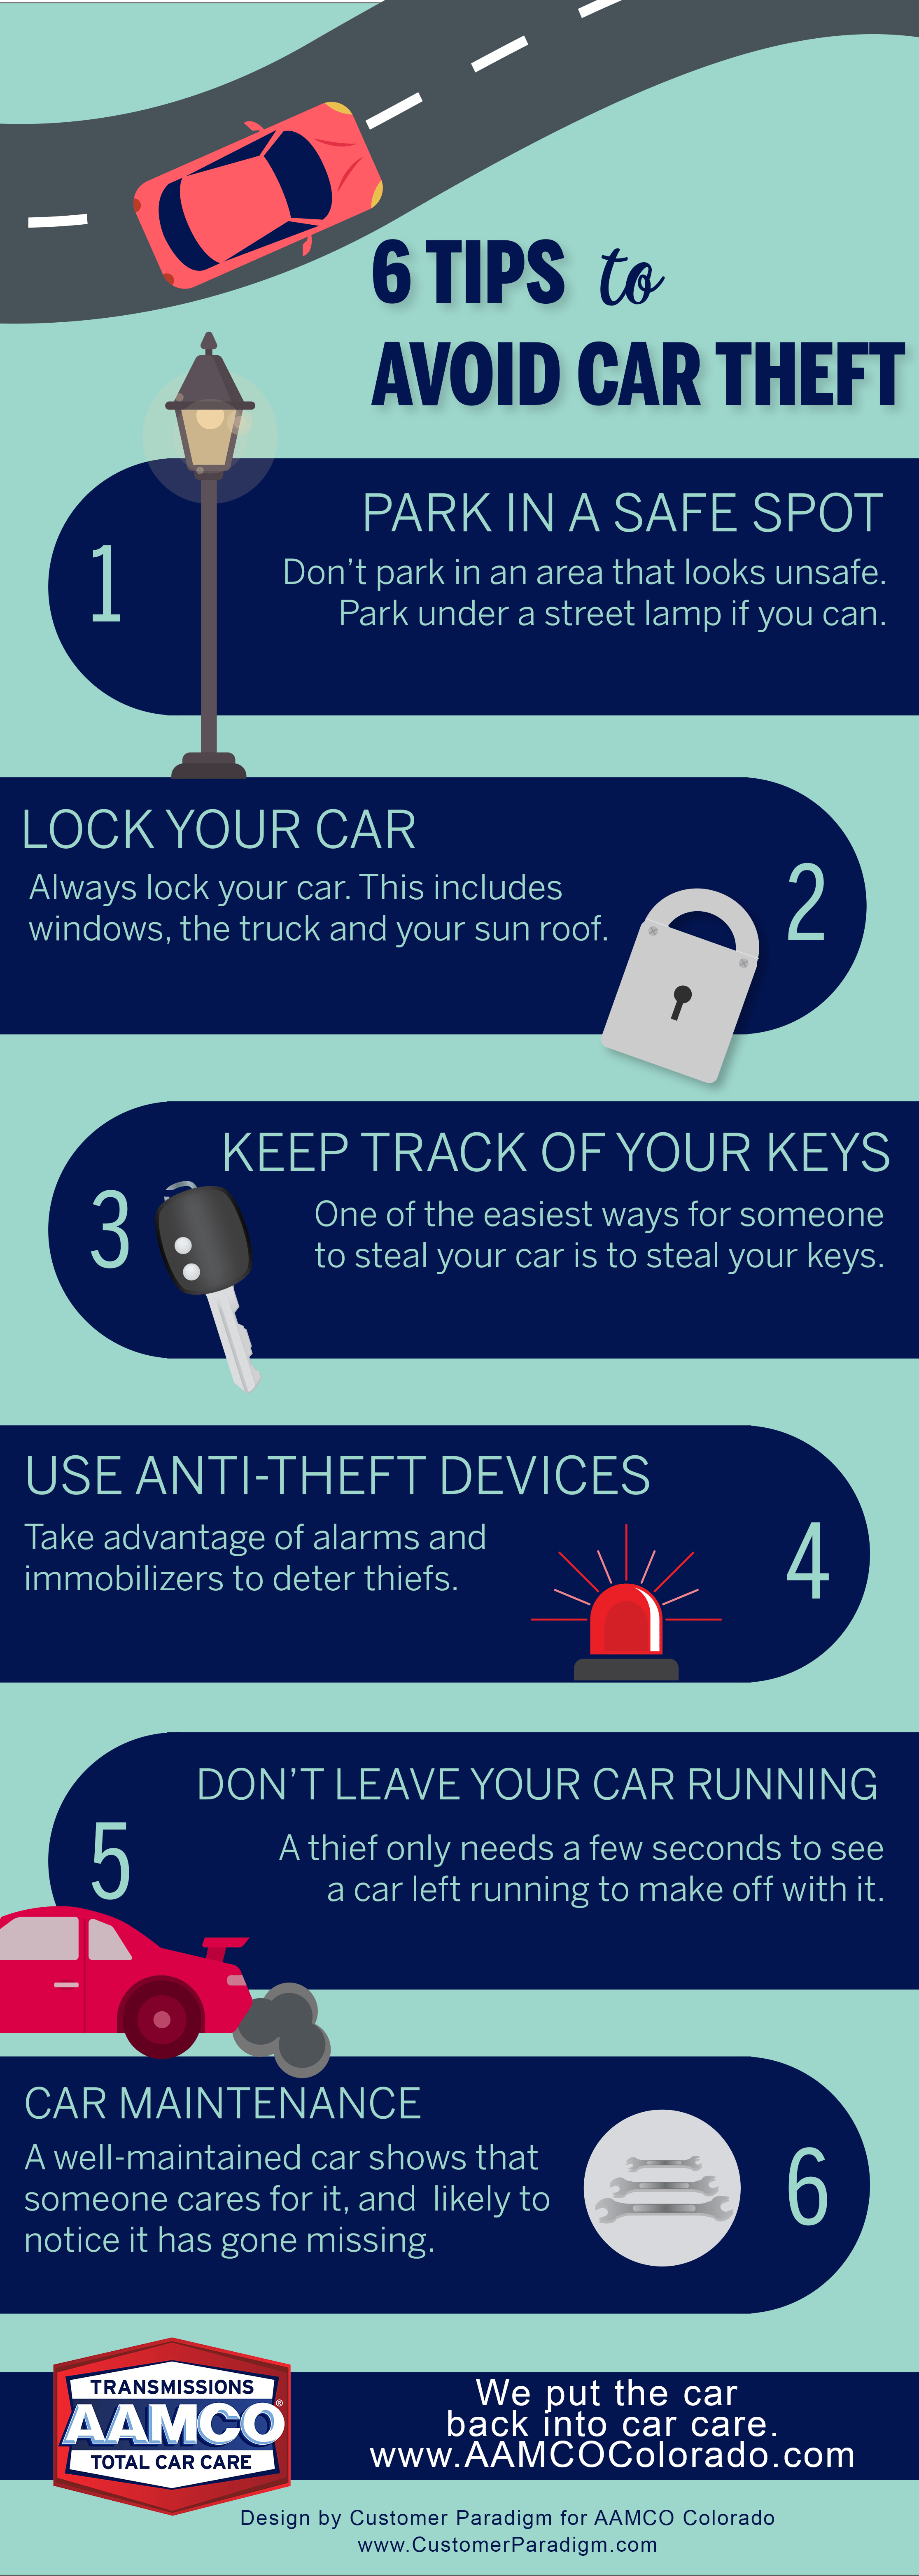 6 Tips to Avoid Being a Car Theft Victim - Infographic | AAMCO Colorado